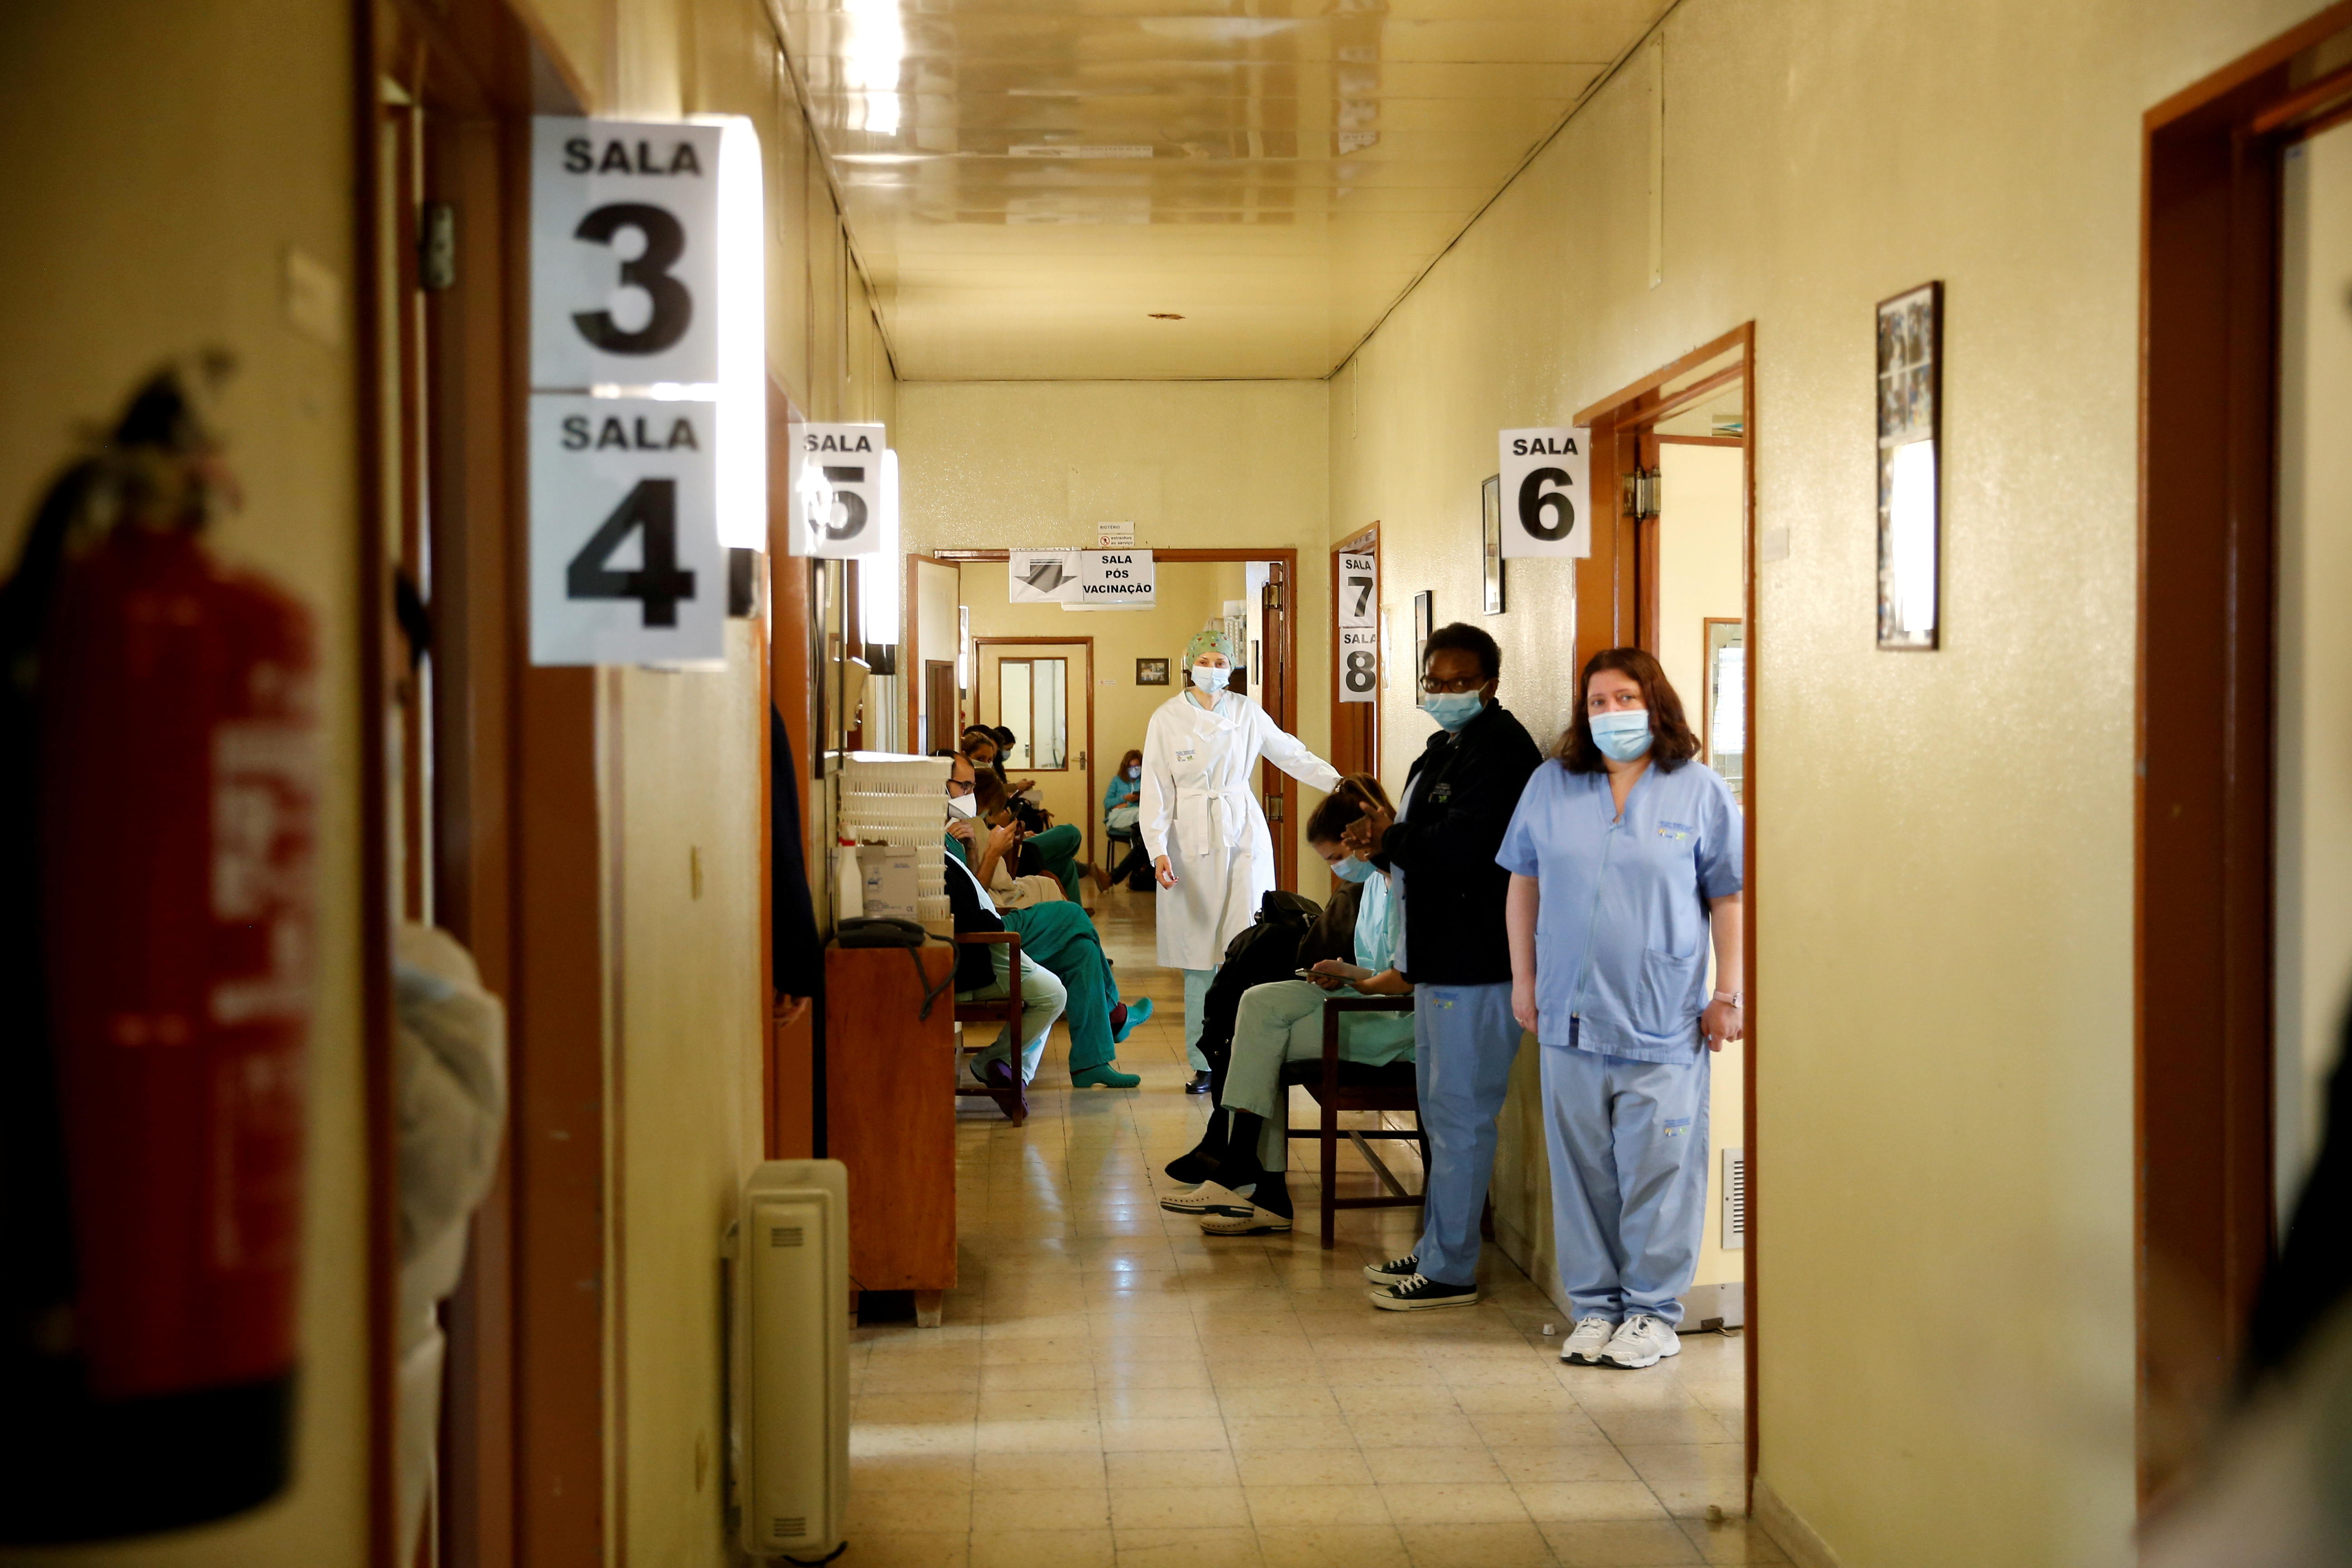 A general view of the cabinets' hallway where medical workers receive the Pfizer-BioNTech coronavirus disease (COVID-19) vaccine at Santa Maria hospital in Lisbon, Portugal, December 28, 2020. REUTERS/Pedro Nunes/File Photo